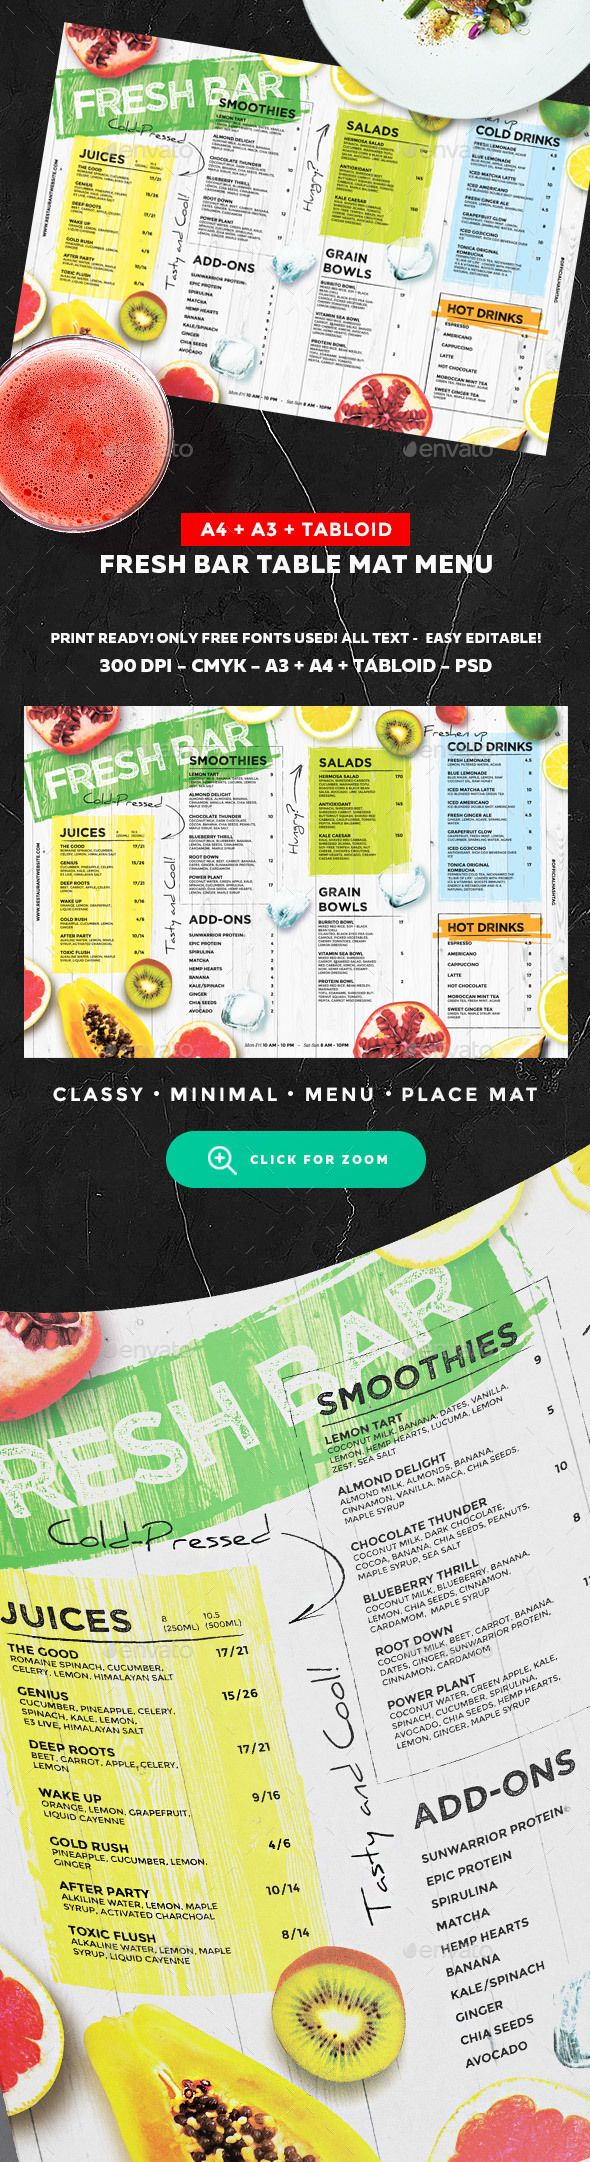 Juice Drinks Menu — Photoshop PSD #watermelon • Download ➝ https://graphicriver.net/item/juice-drinks-menu/20250323?ref=pxcr